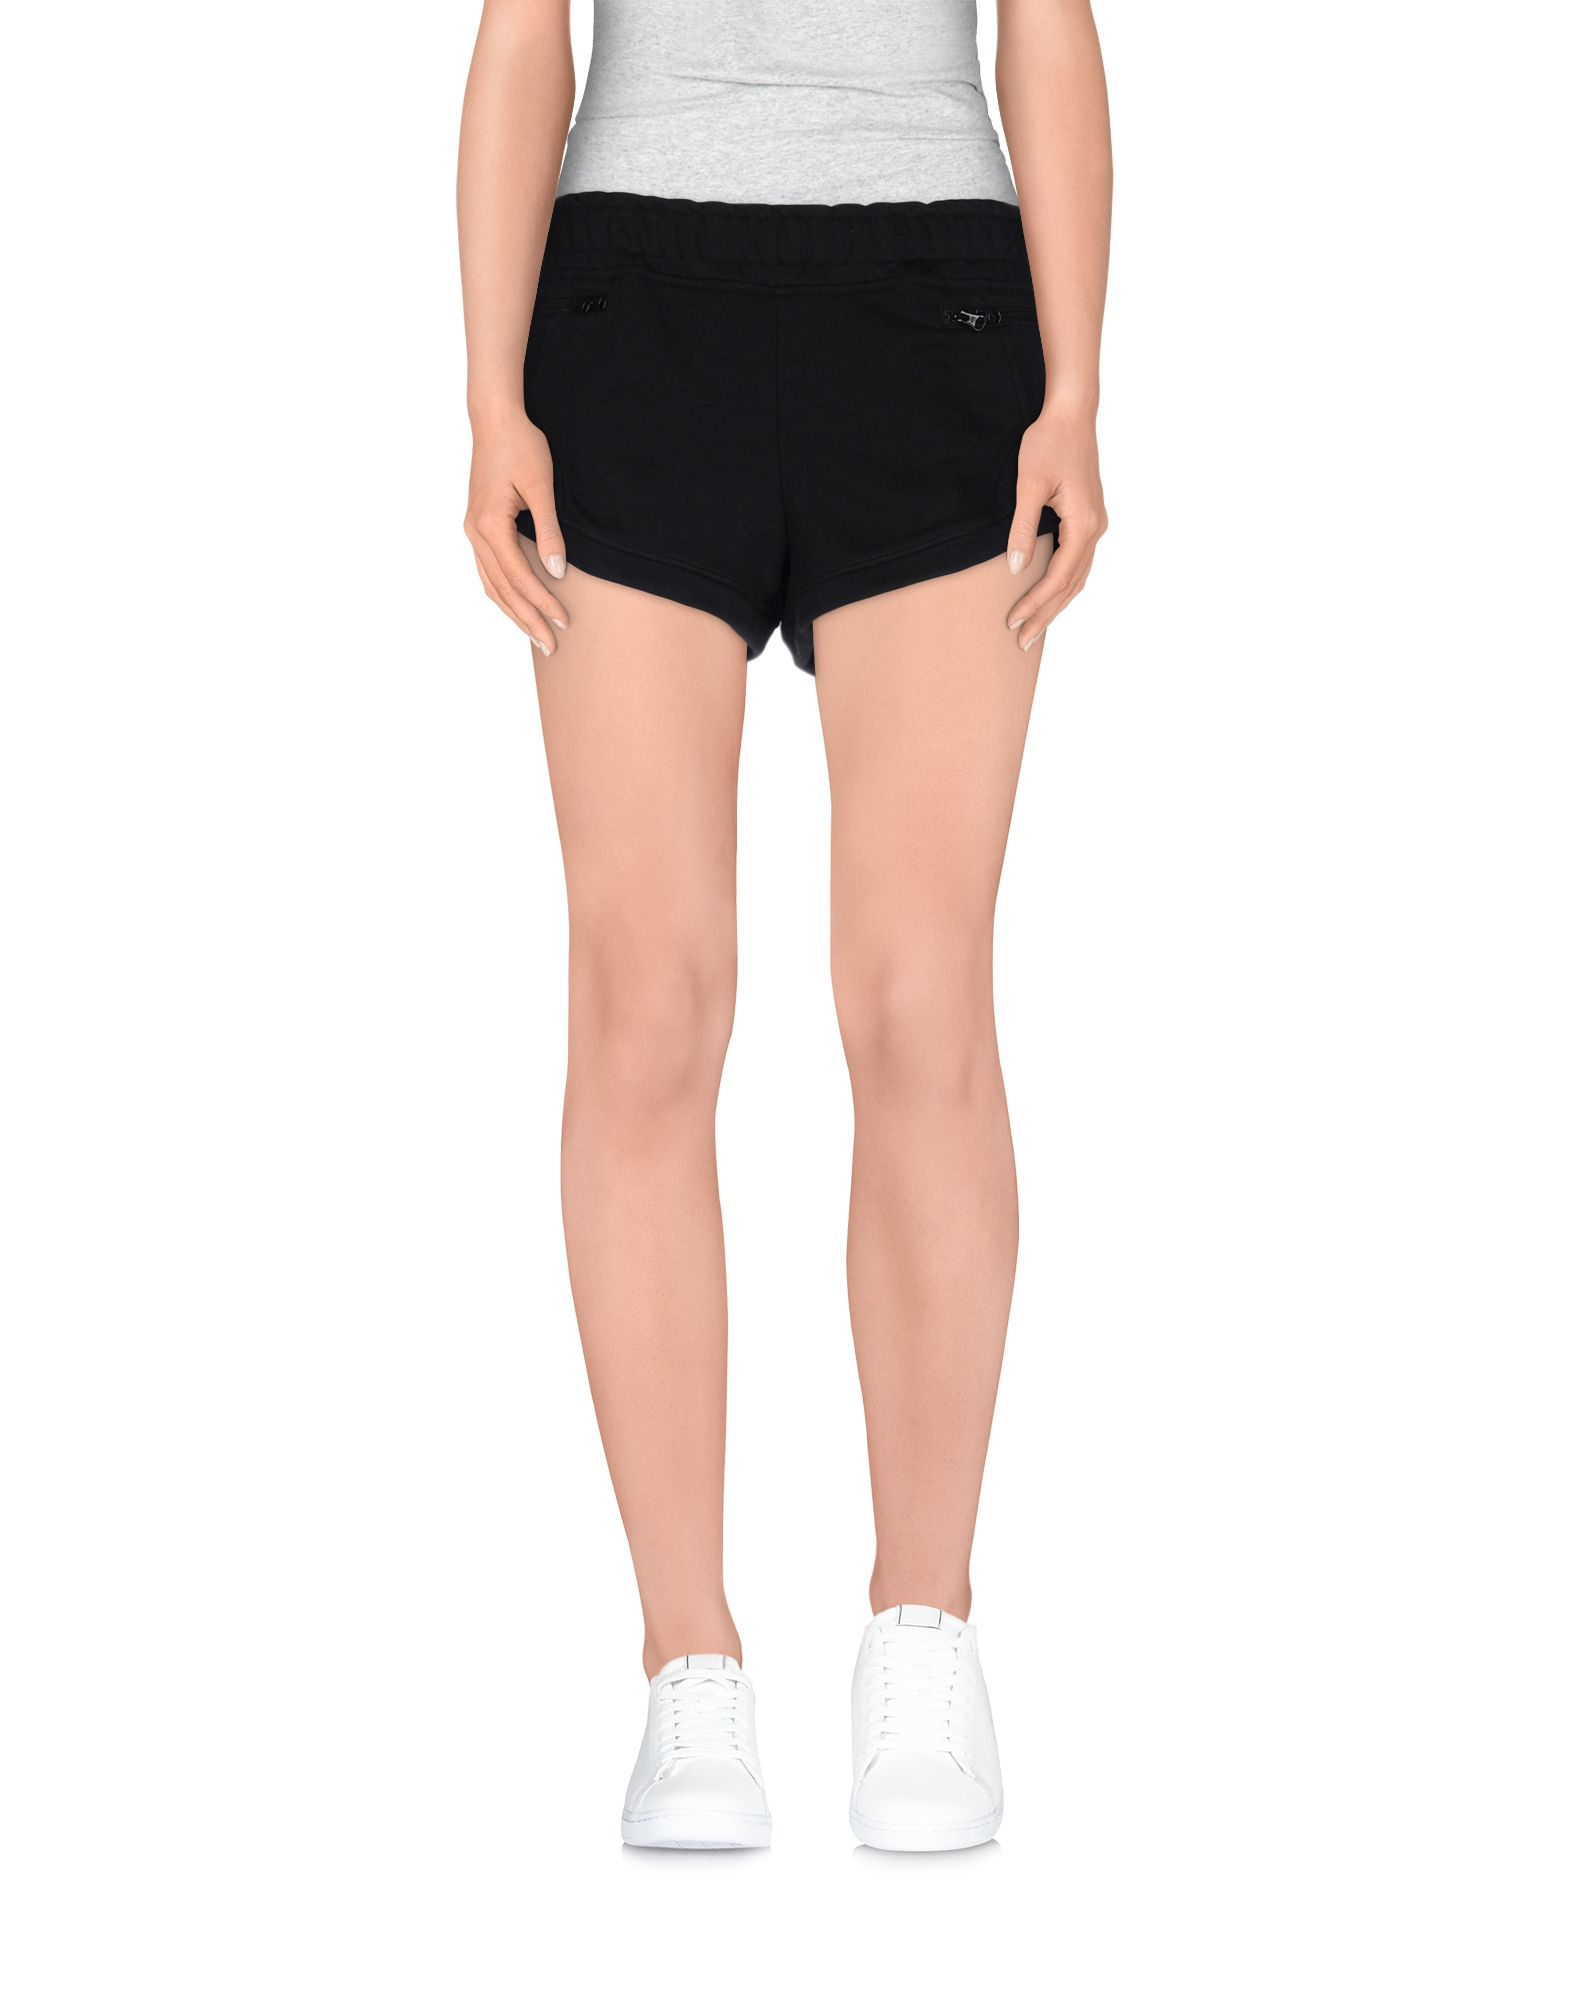 adidas by stella mccartney shorts in black lyst. Black Bedroom Furniture Sets. Home Design Ideas